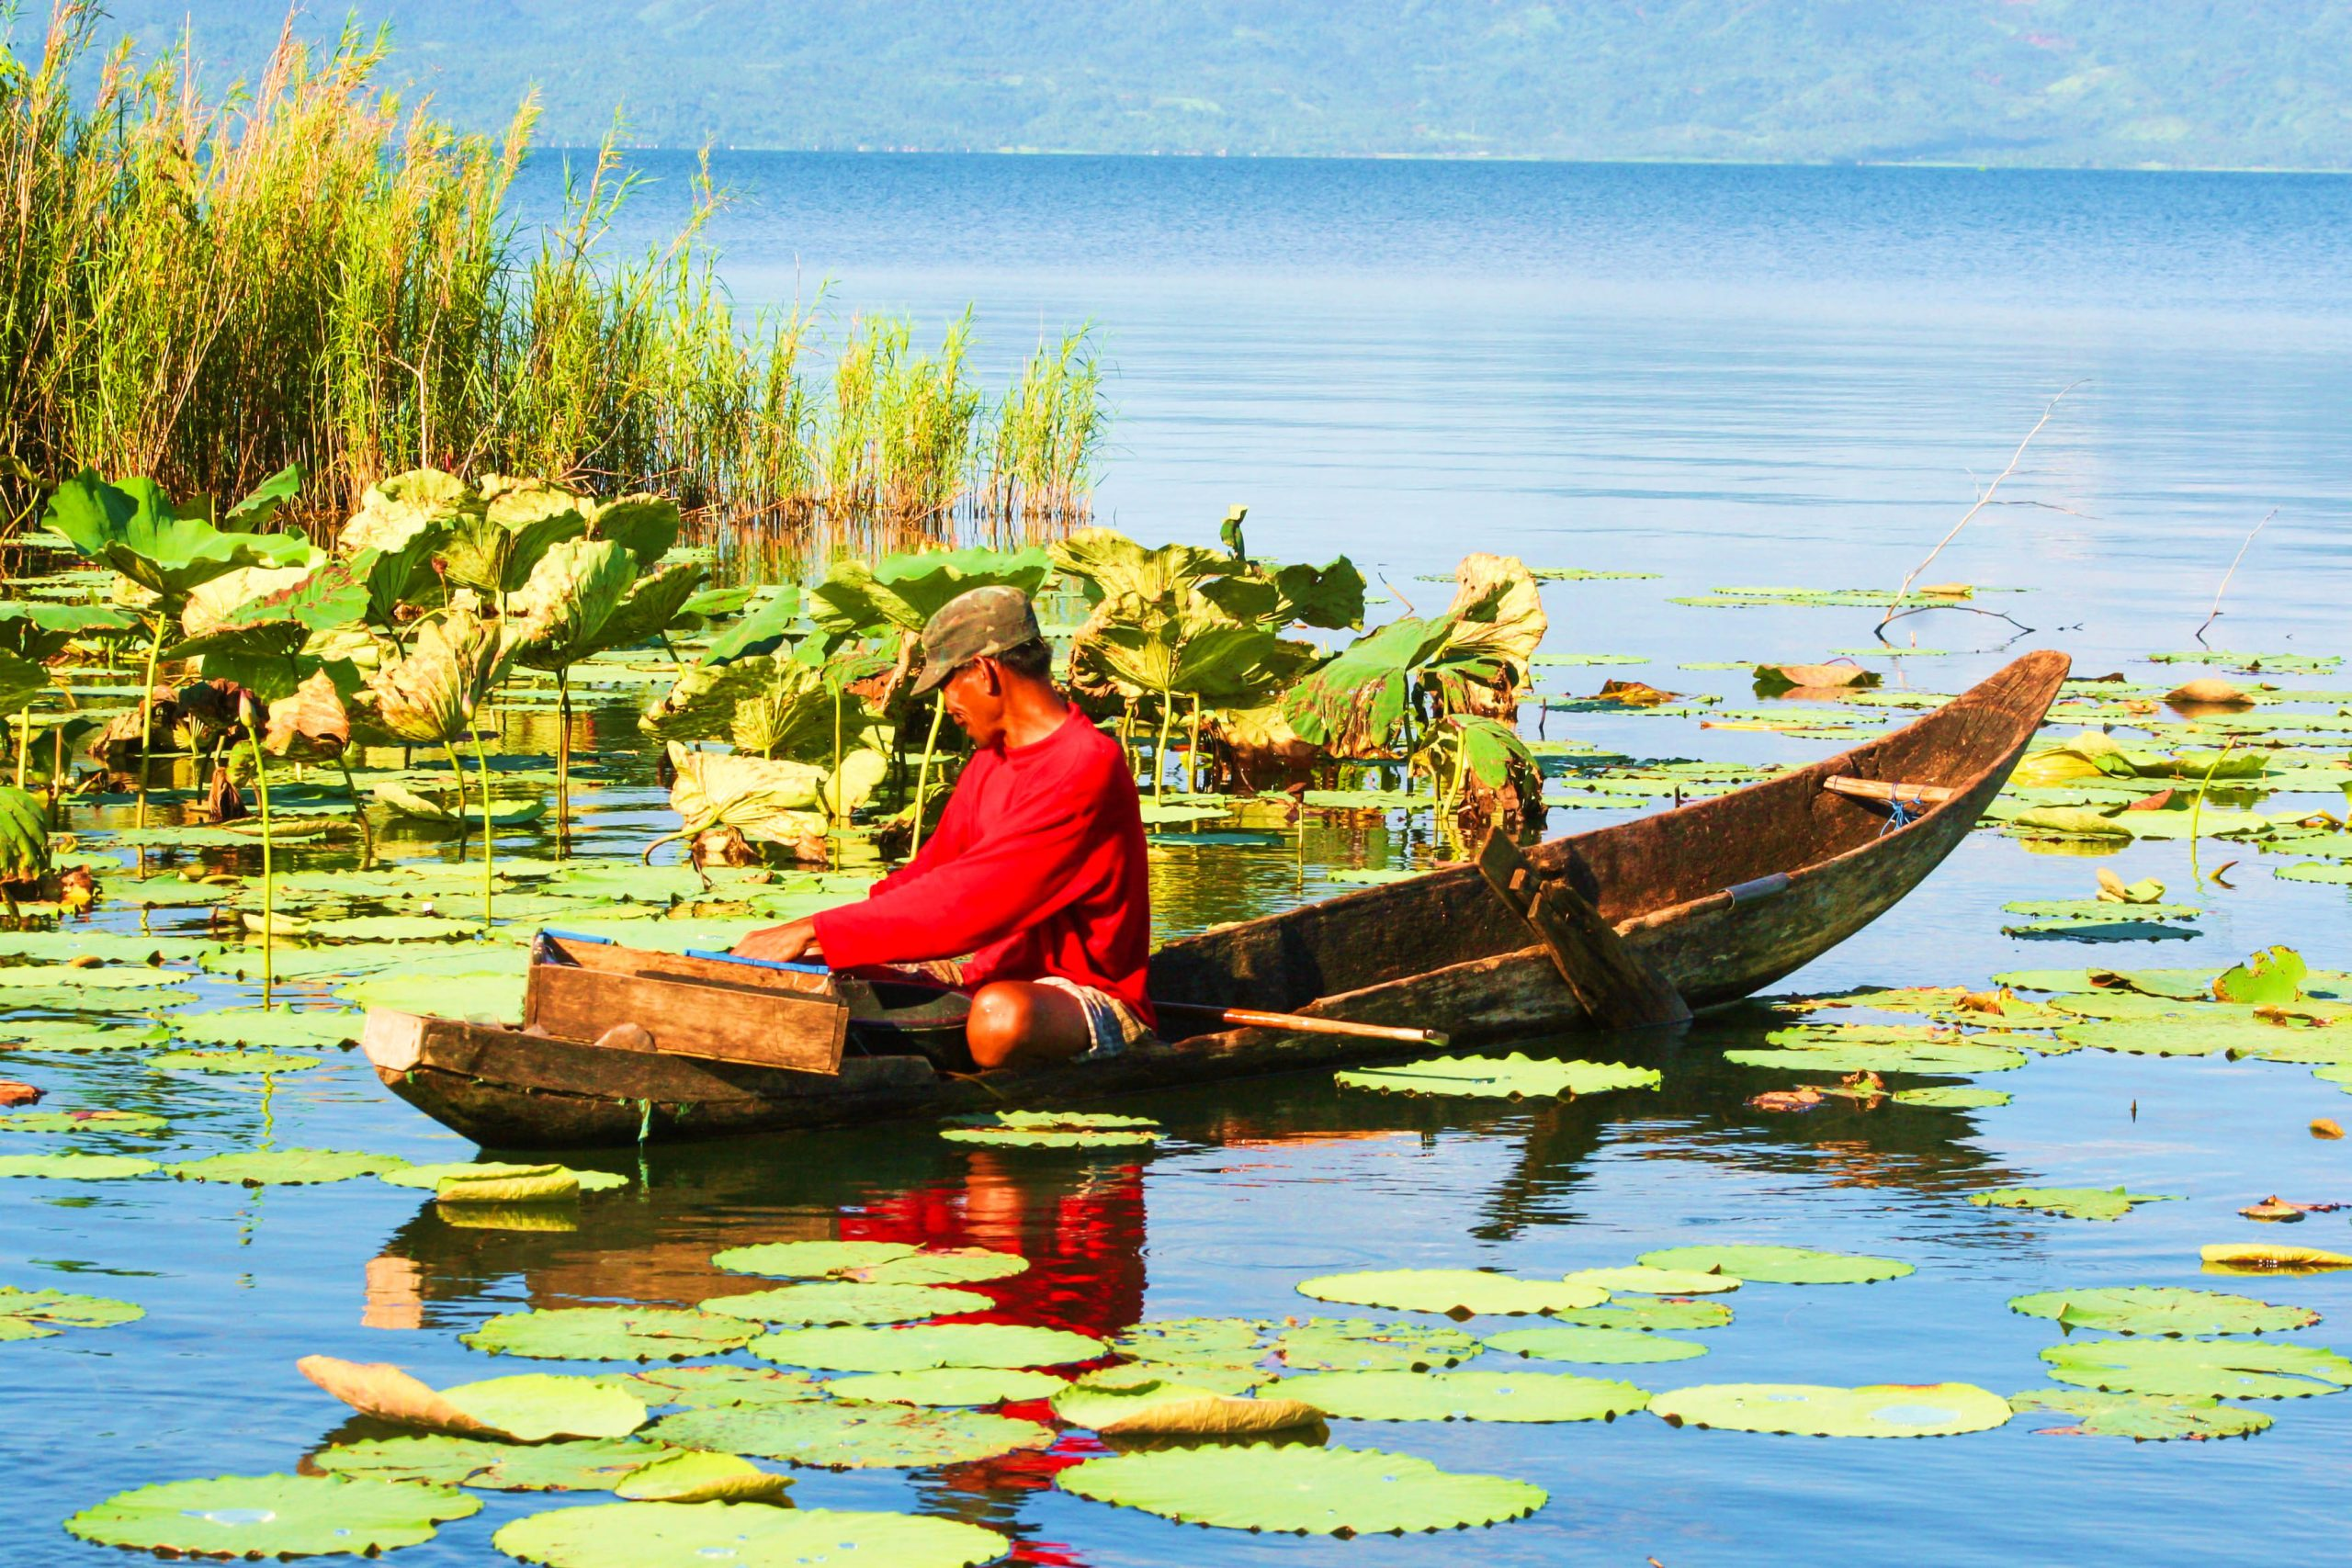 A man in a dugout canoe floating over a water covered with lilies and grasses